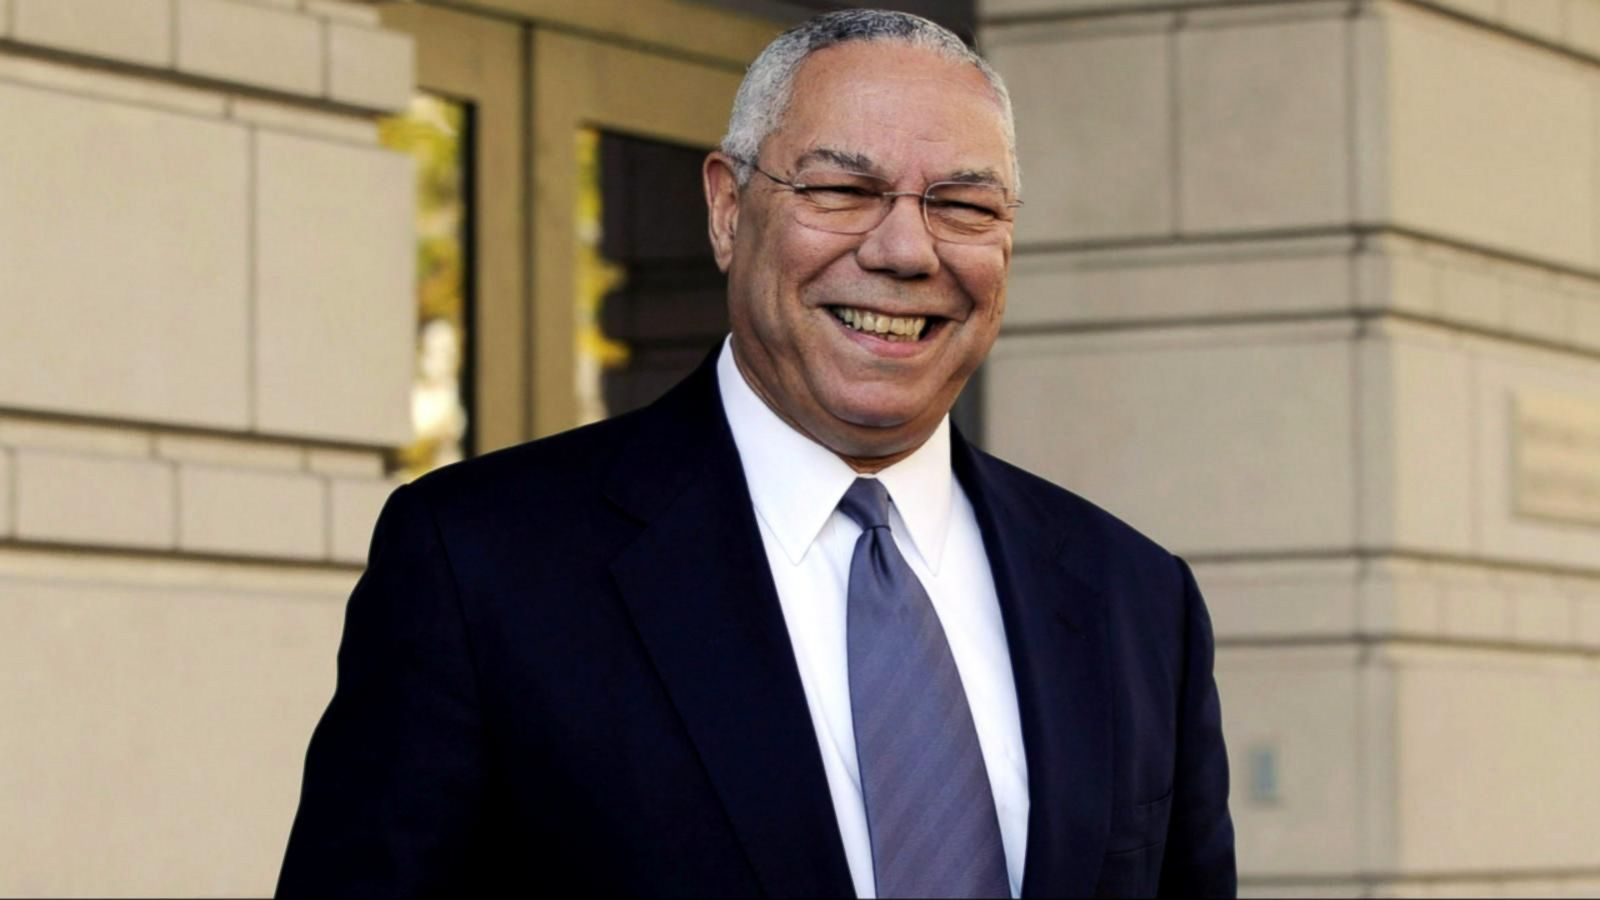 VIDEO: Colin Powell Announces He'll Vote for Hillary Clinton